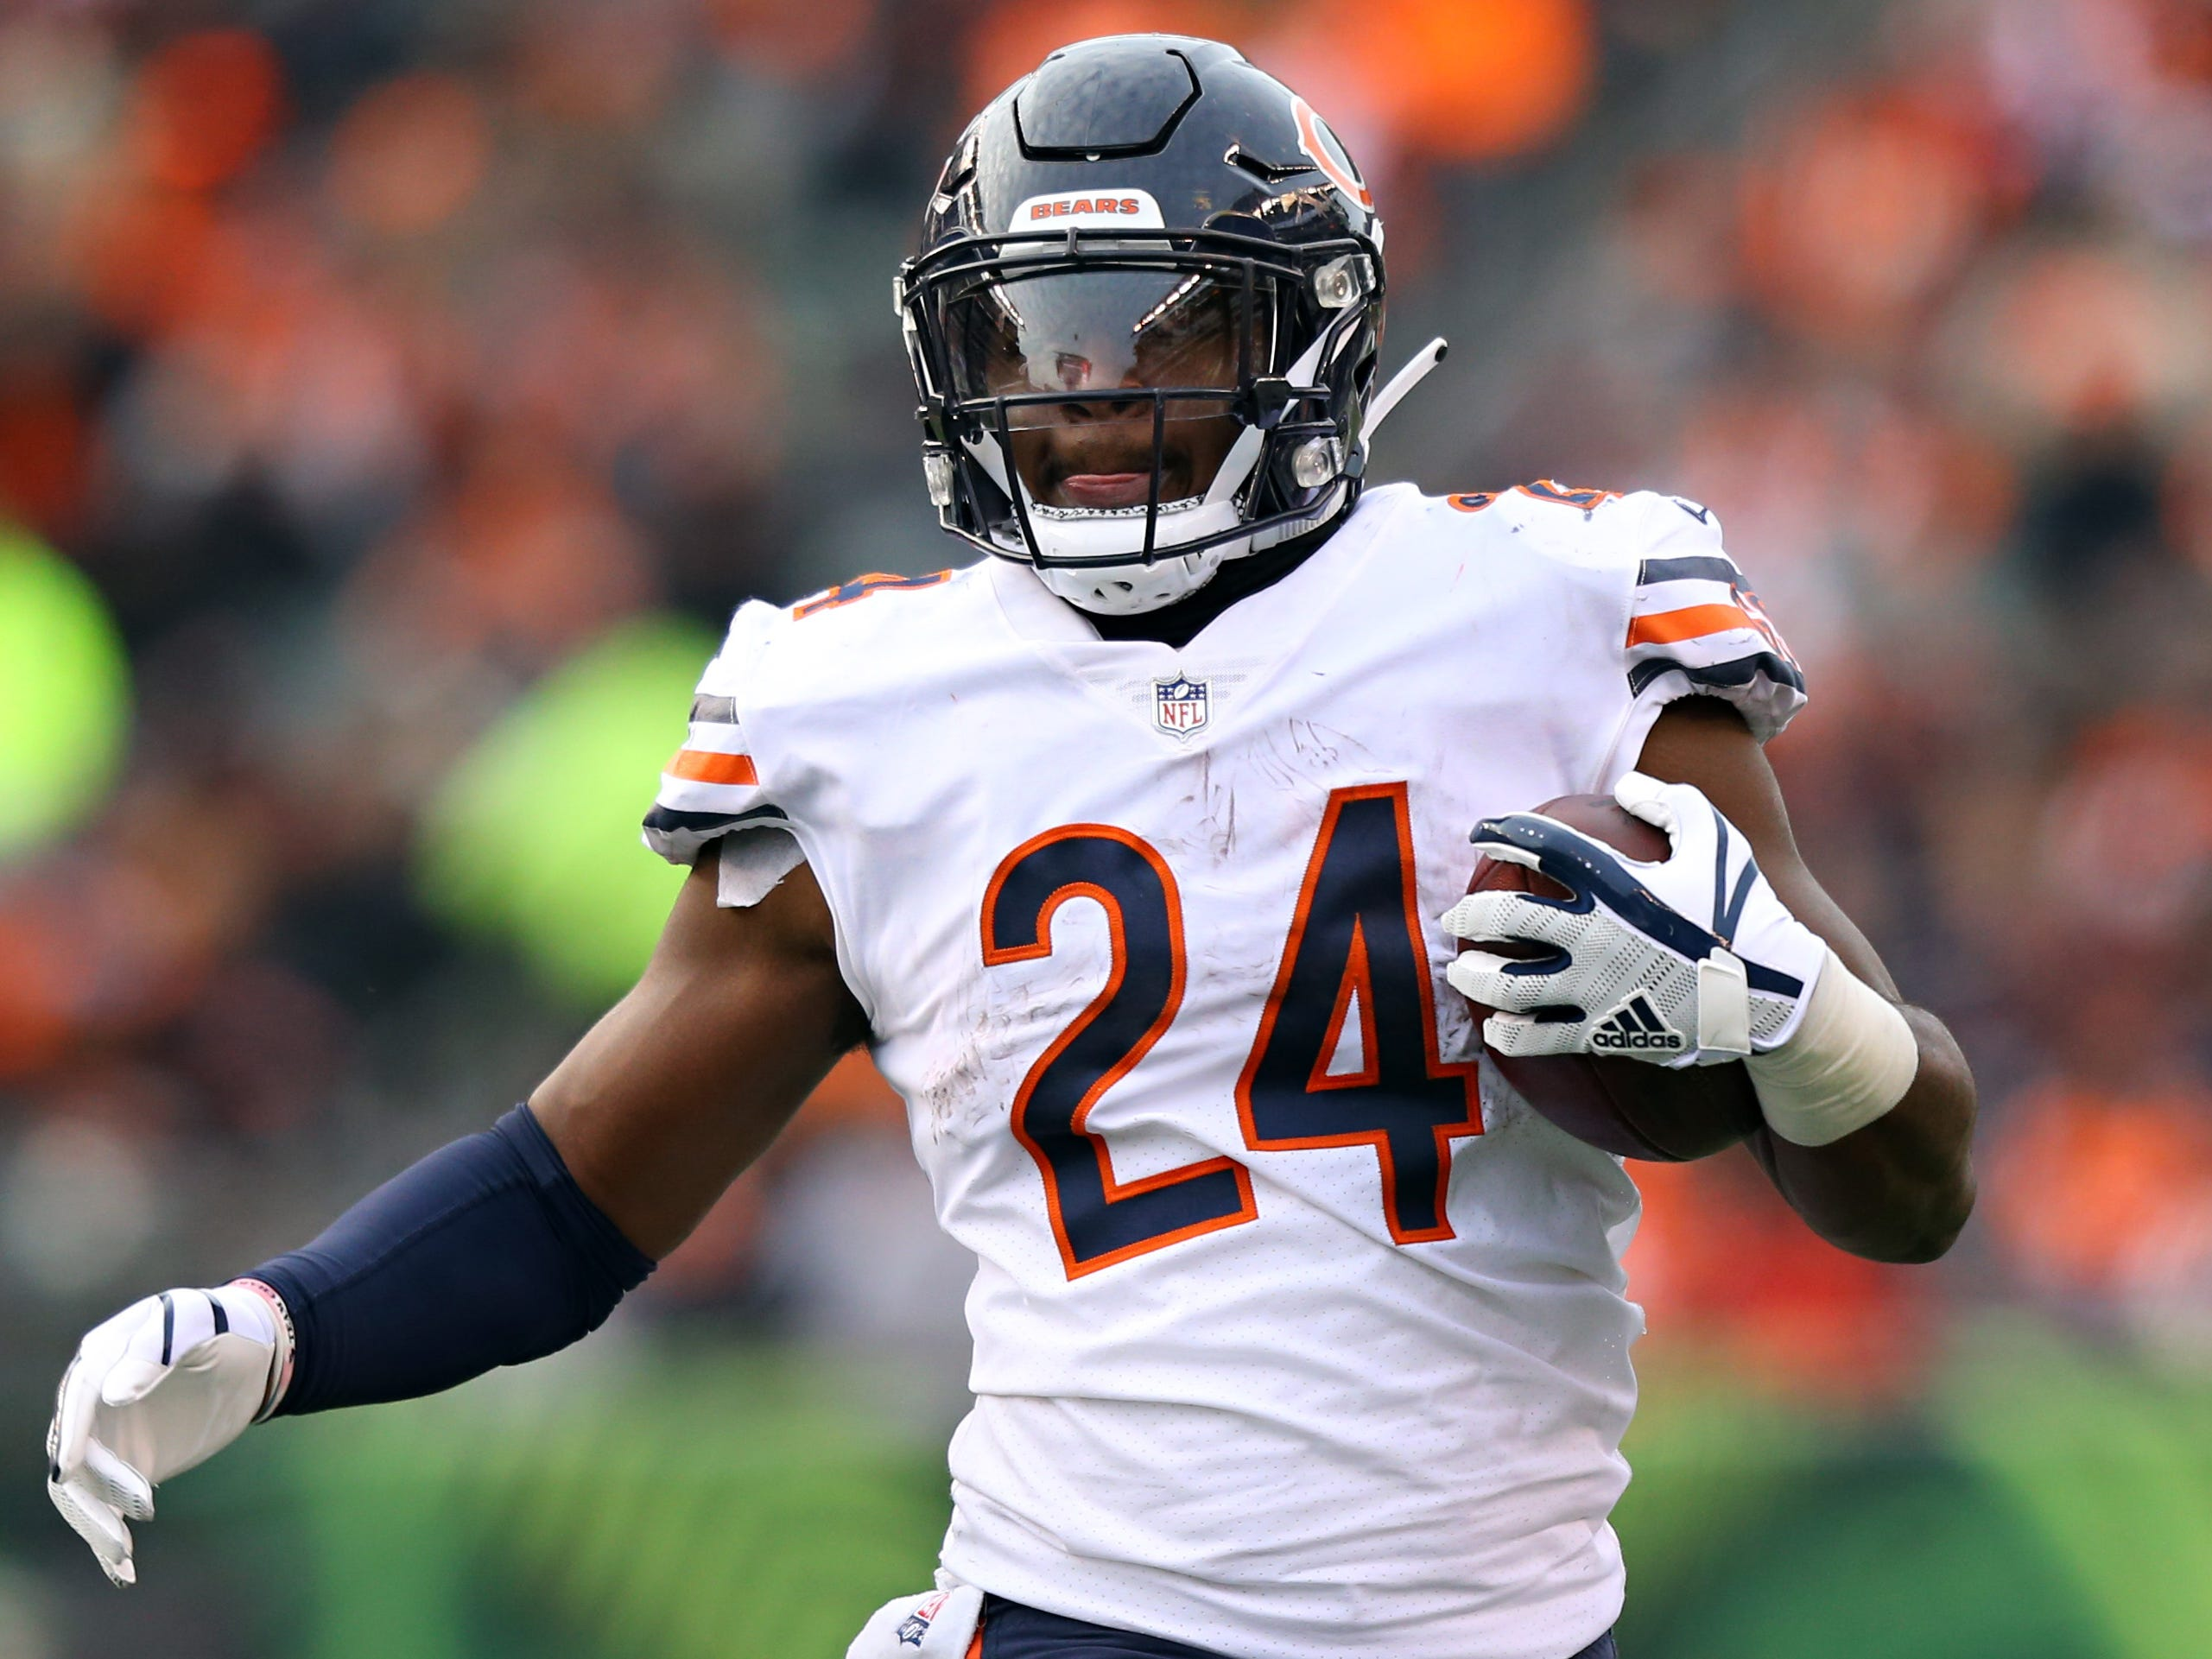 No. 28: Jordan Howard, RB, Bears